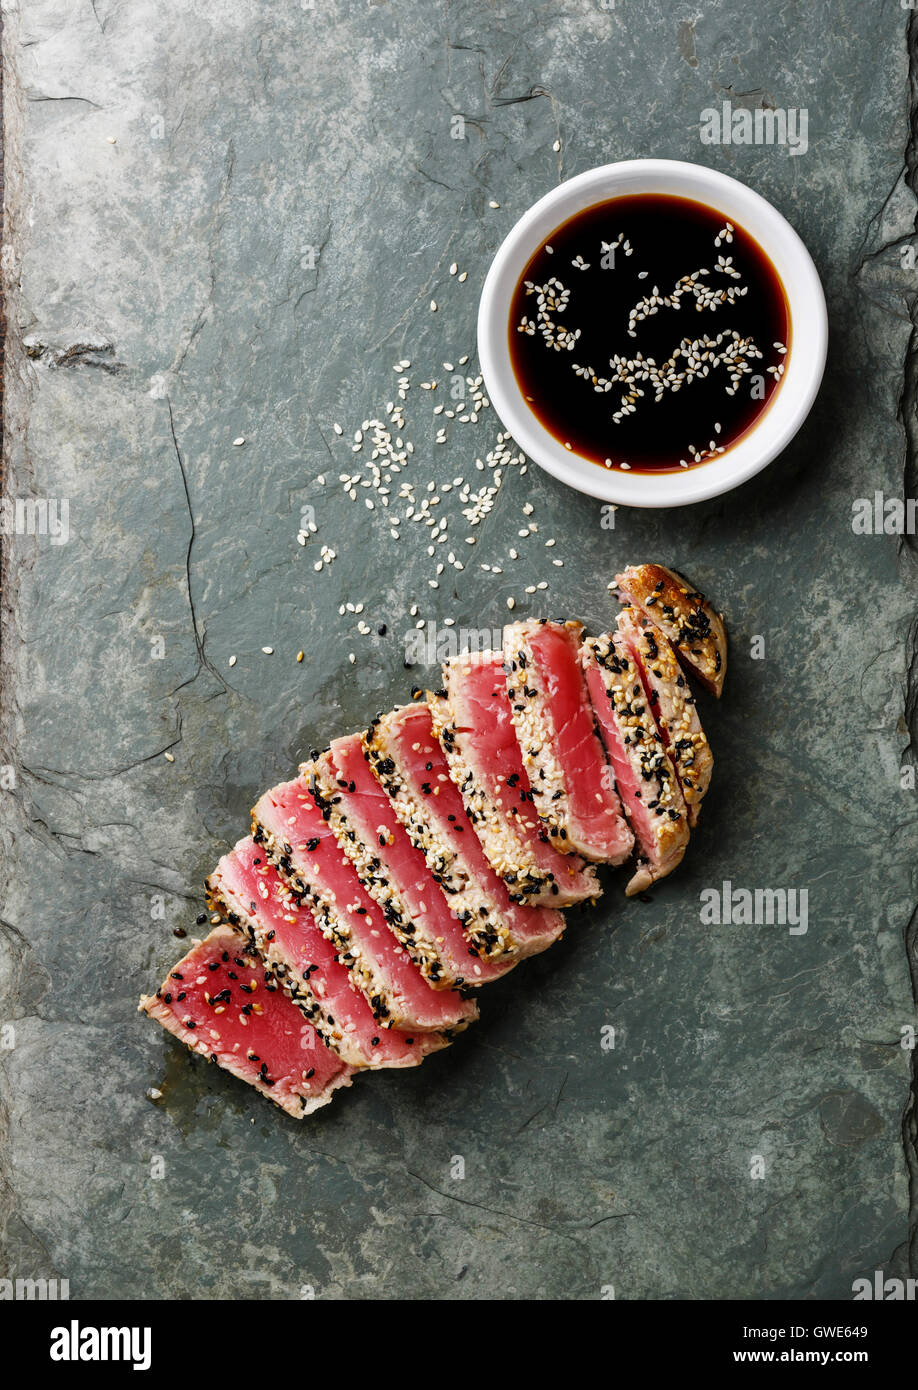 Sliced grilled Tuna steak in sesame and soy sauce on stone slate board - Stock Image